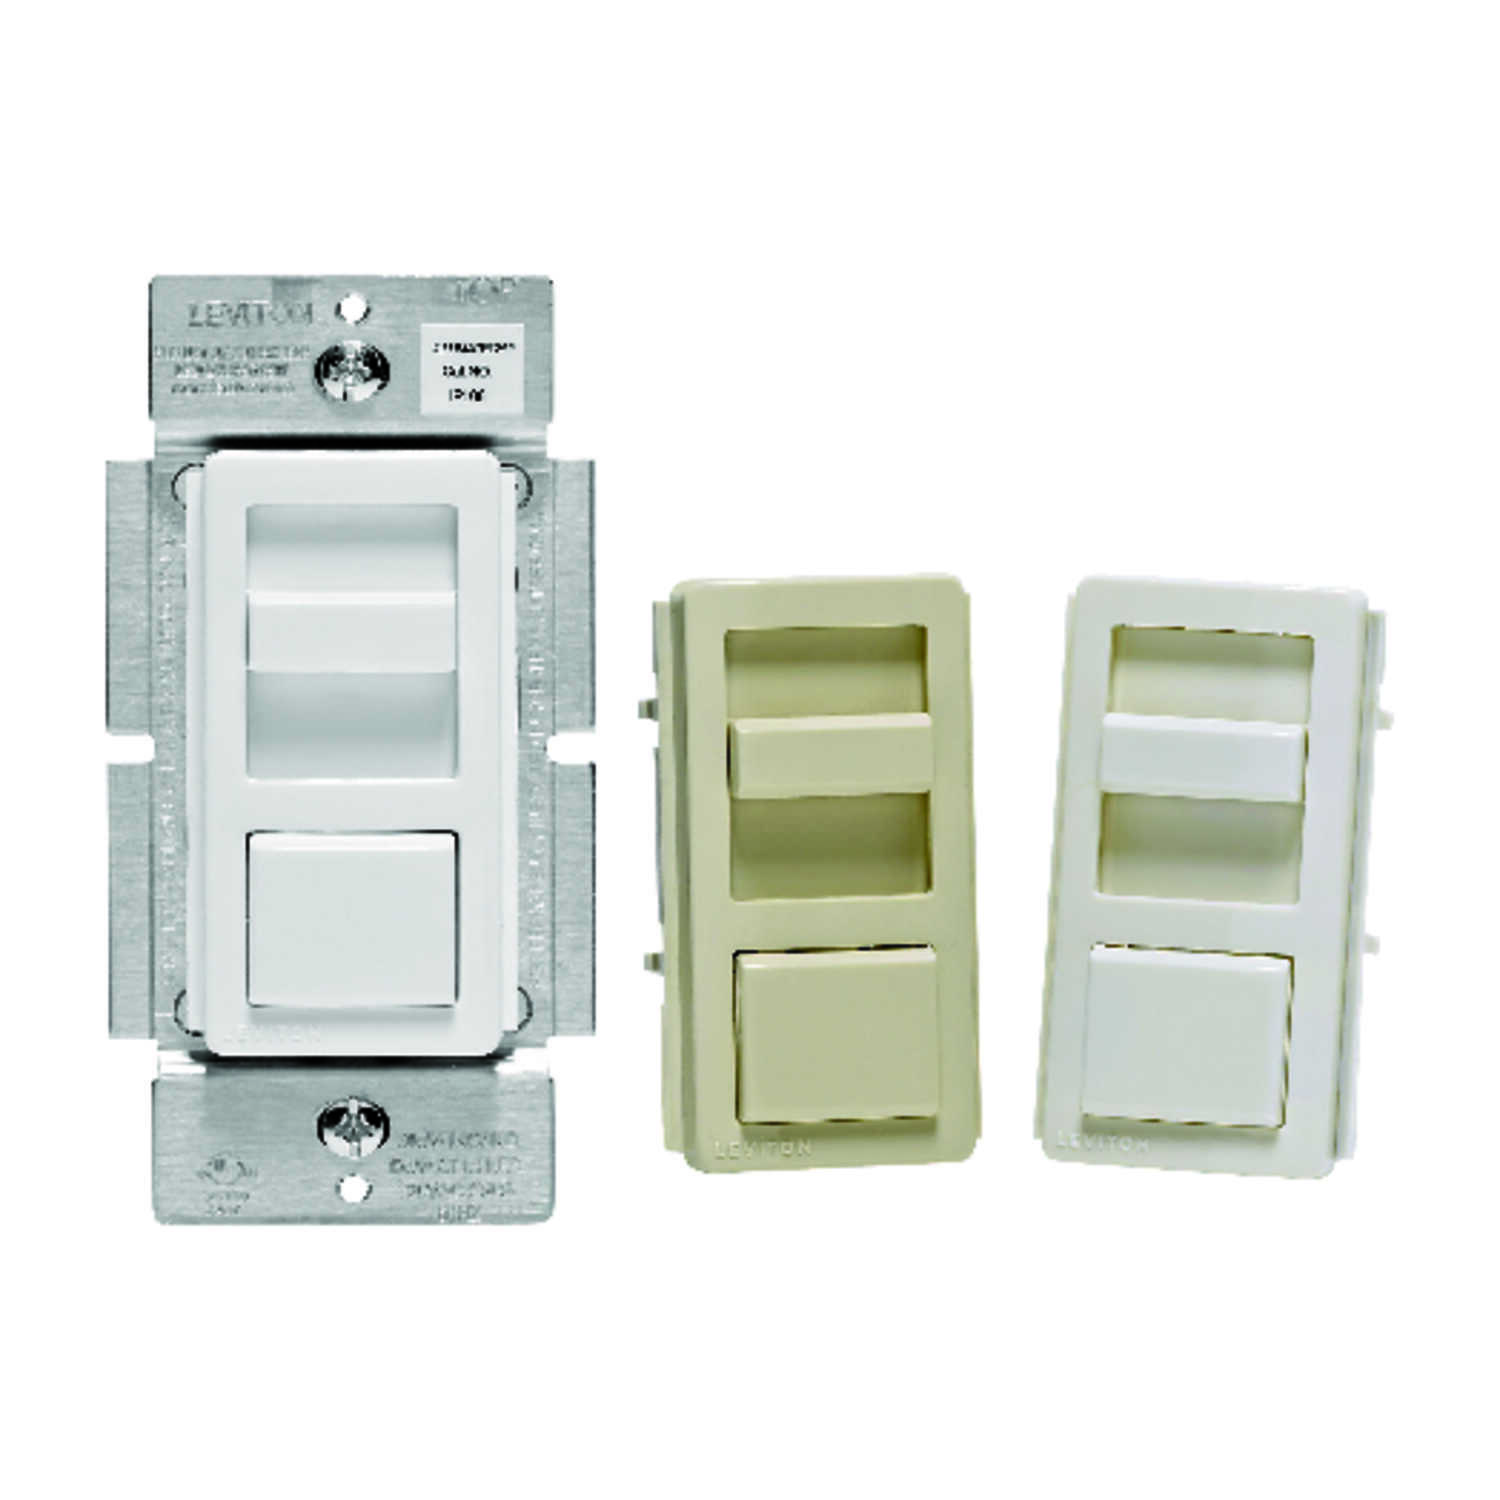 Leviton  IllumaTech  Multicolored  150 watts Slide  Dimmer Switch  1 pk